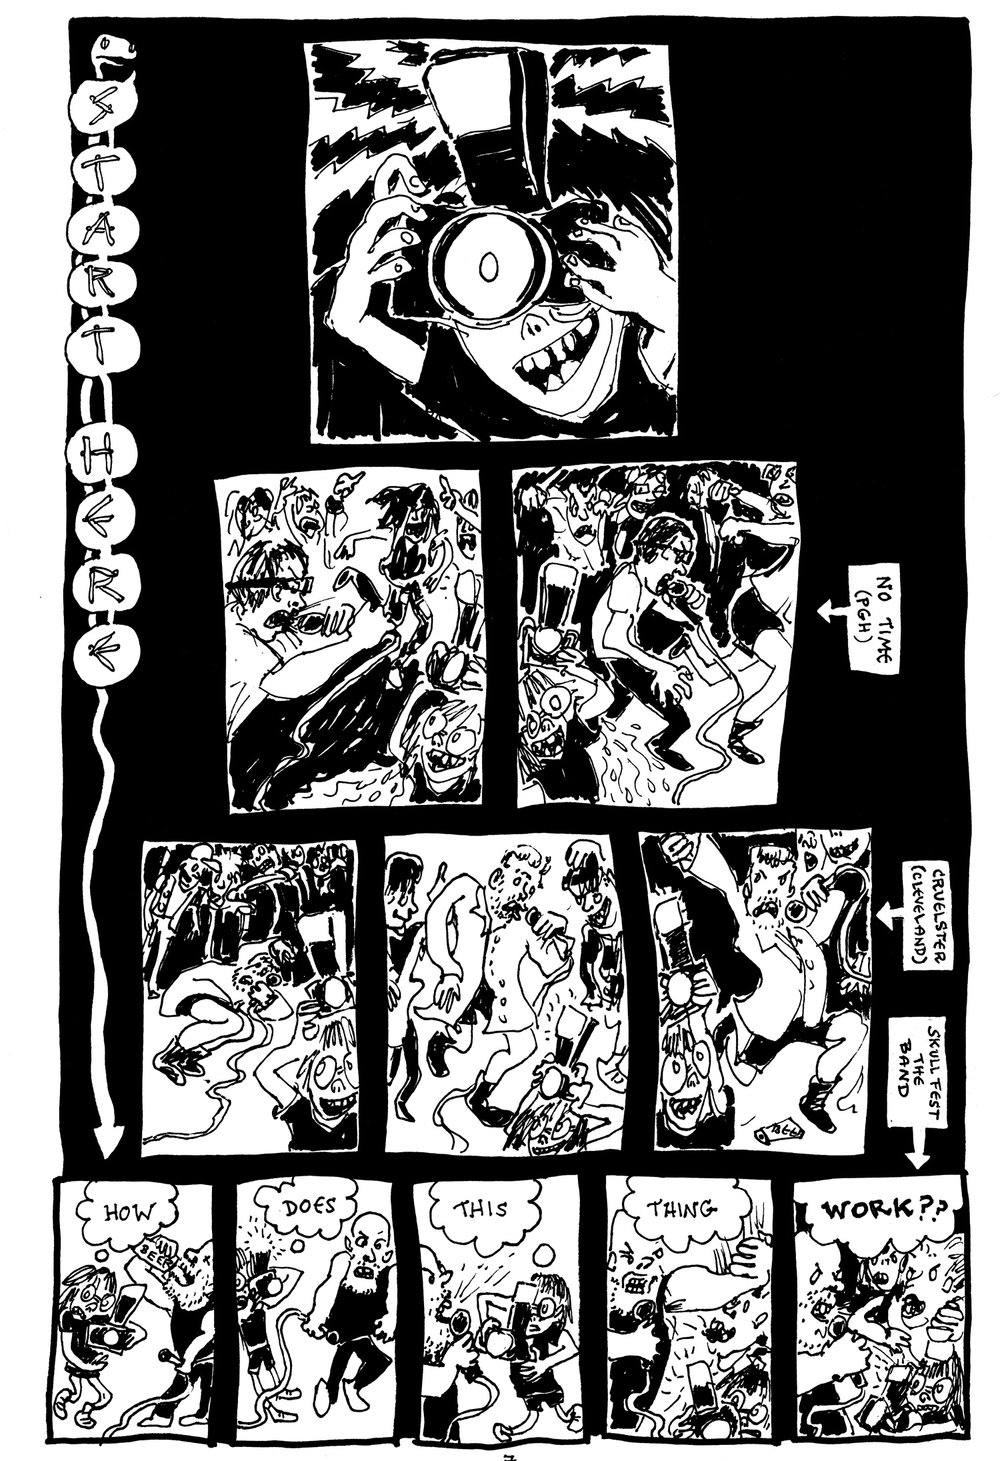 skull_quest_issue_3_page7.jpg